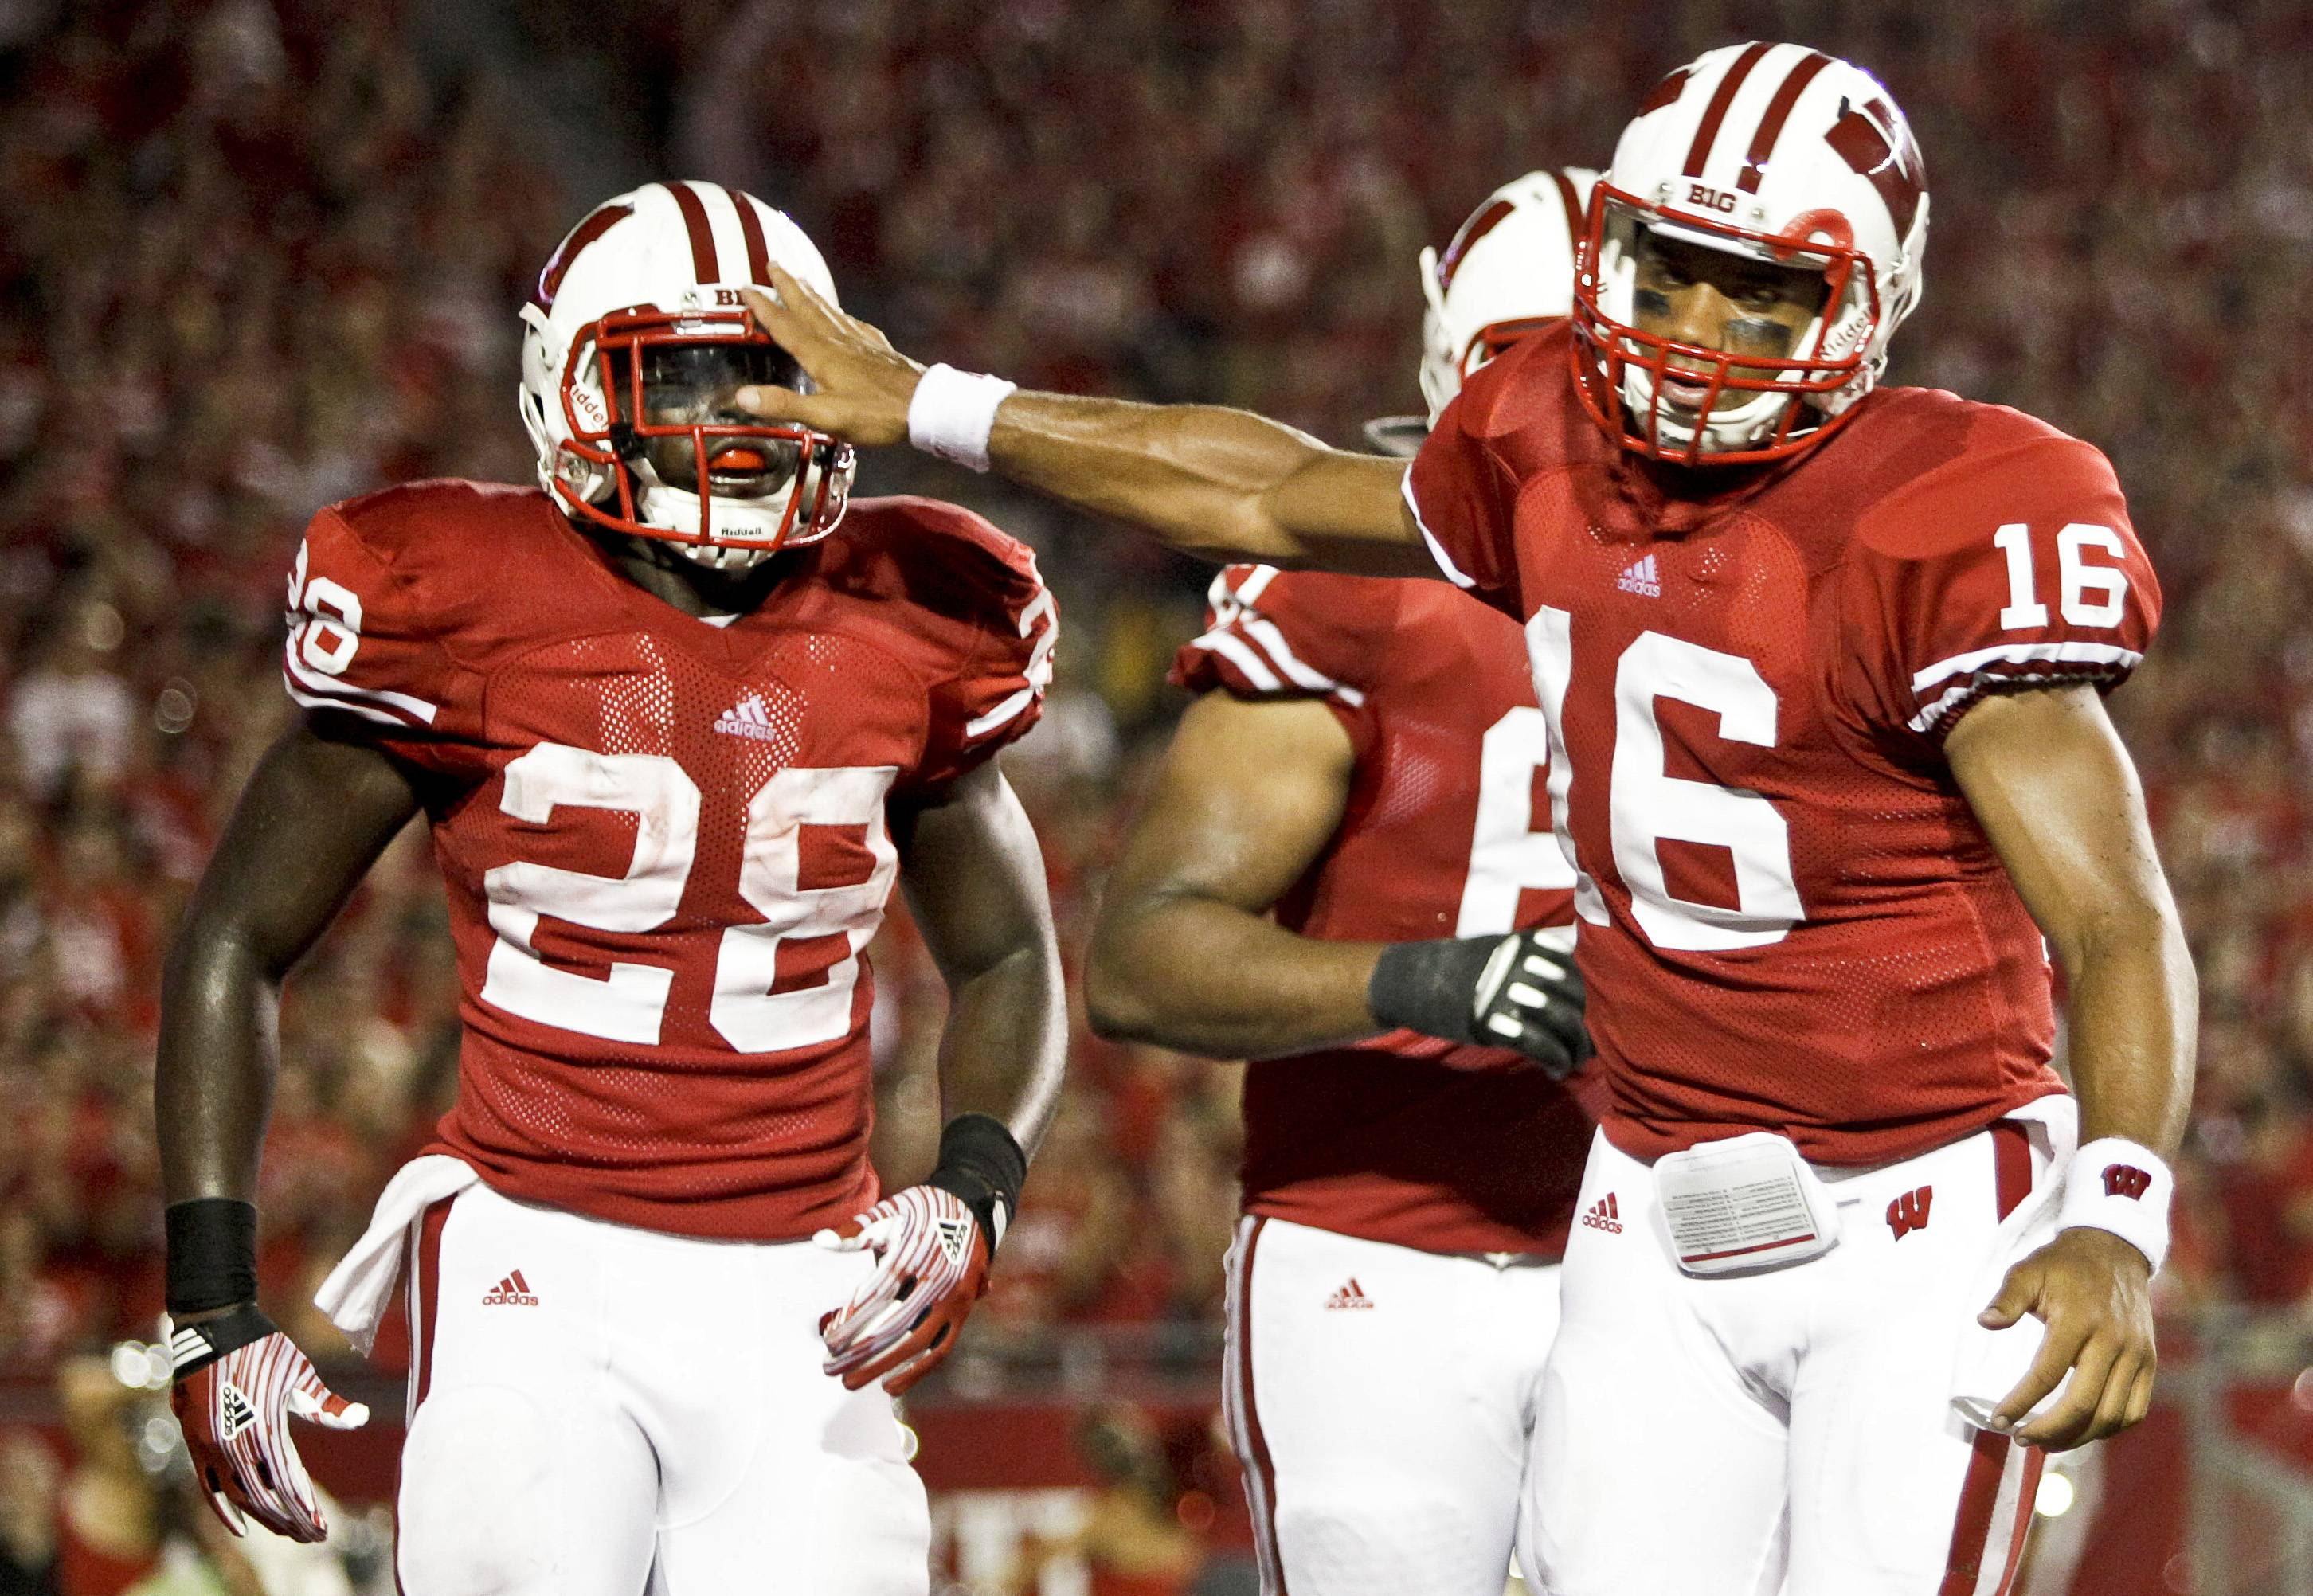 Wisconsin quarterback Russell Wilson (16) congratulates running back Montee Ball (28) after Ball's touchdown run during the first half Thursday night.